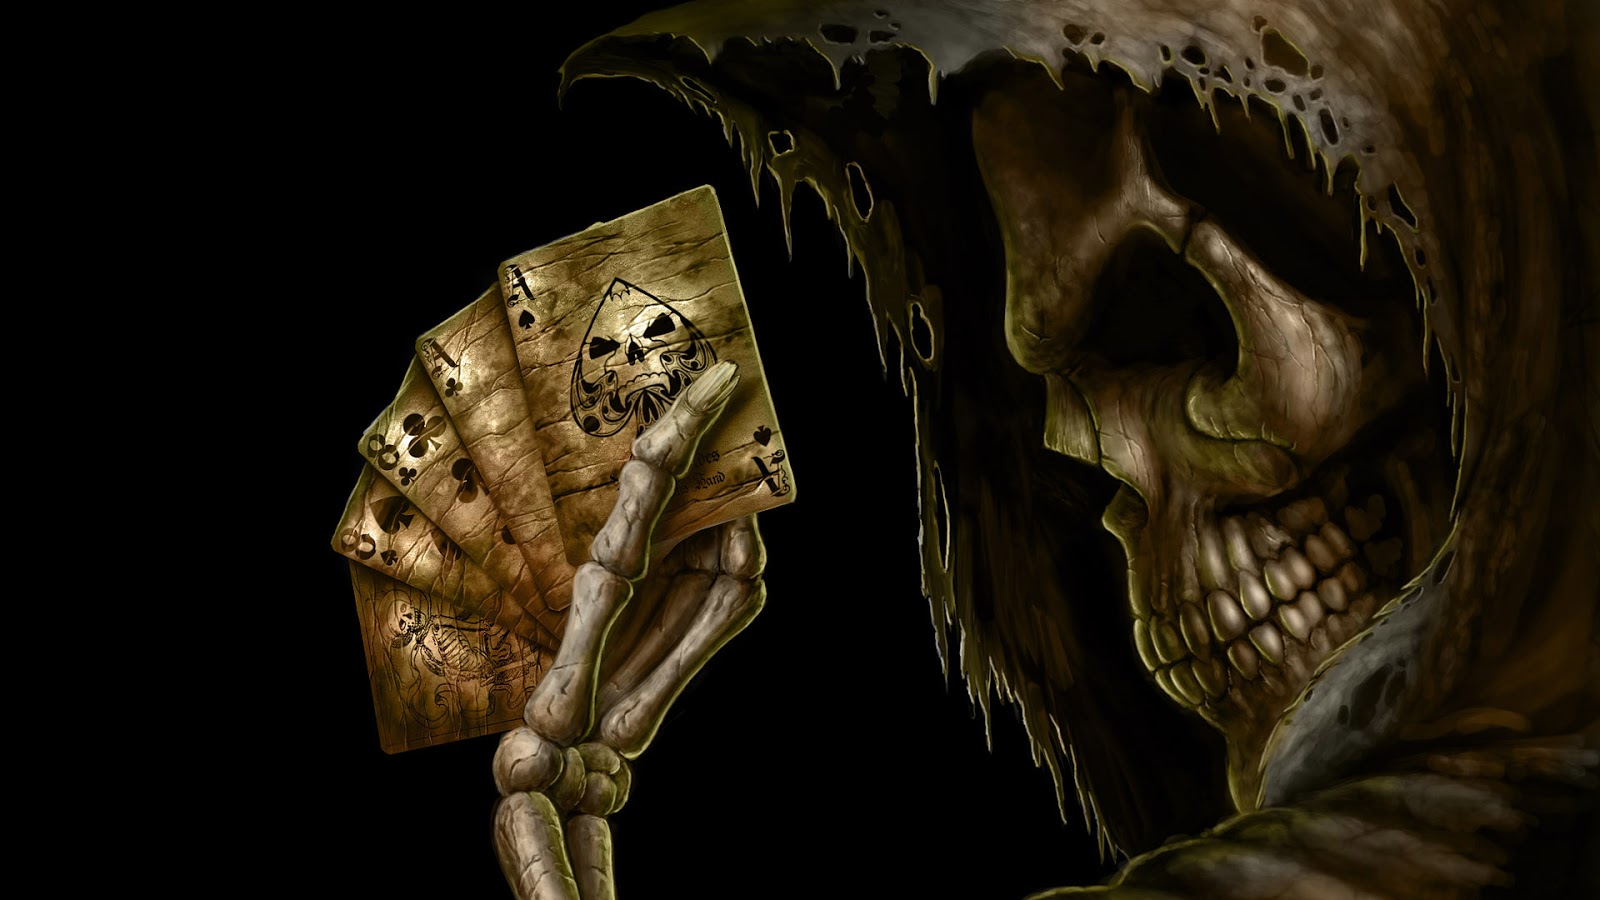 scary halloween wallpapers full hd - halloween wallpapers